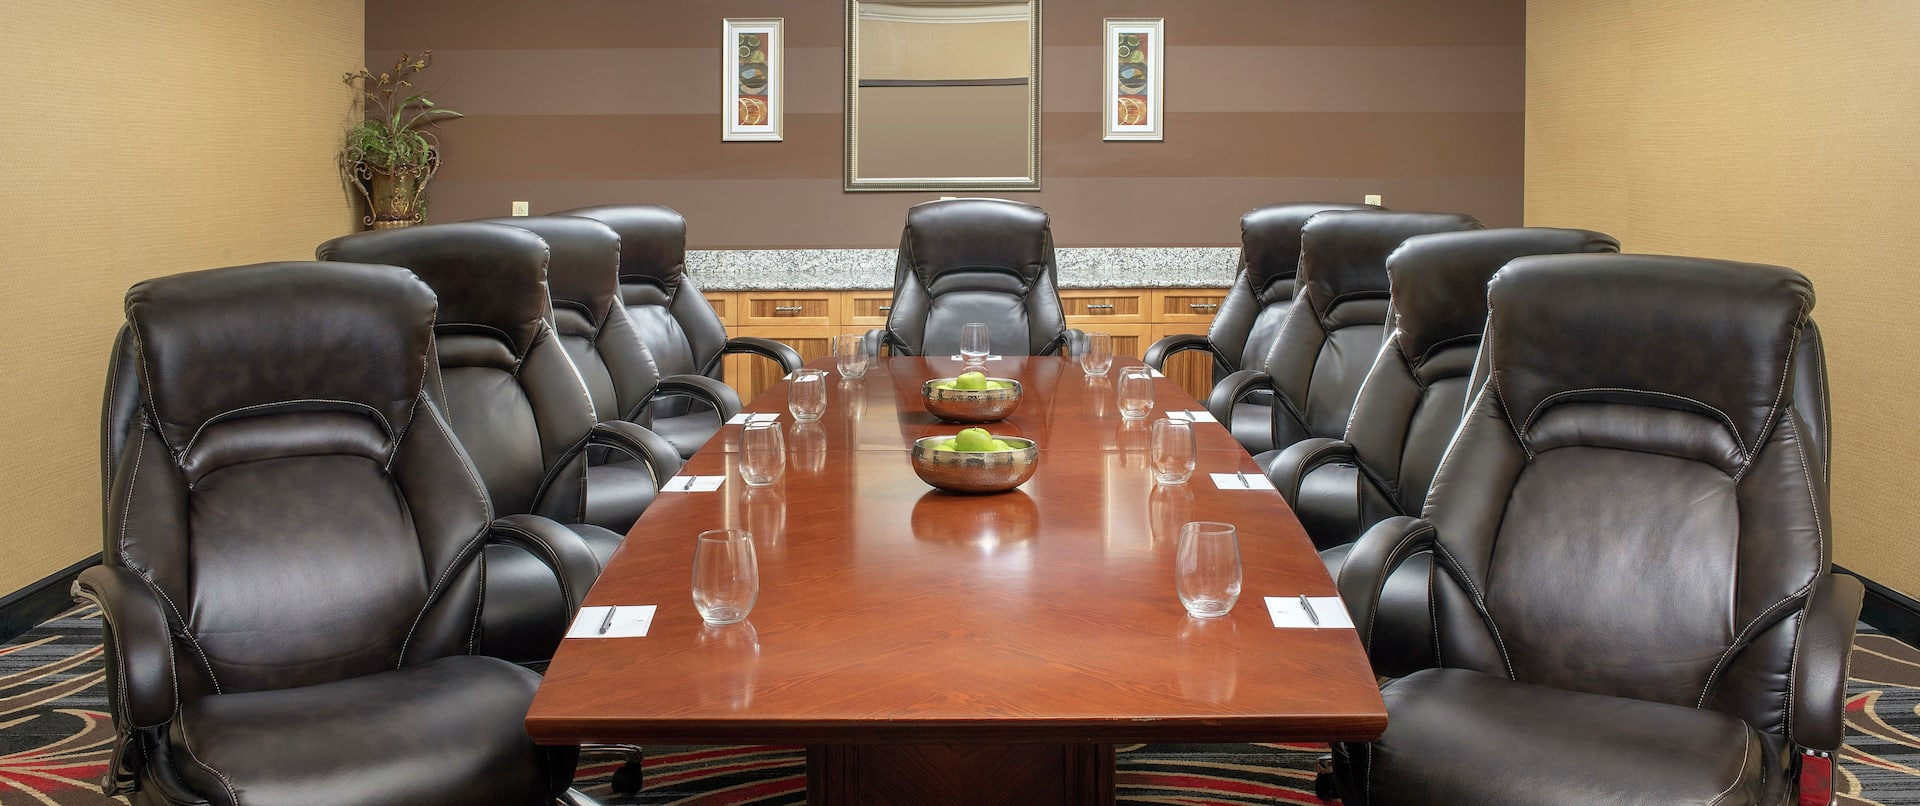 Boardroom with Seating for Ten